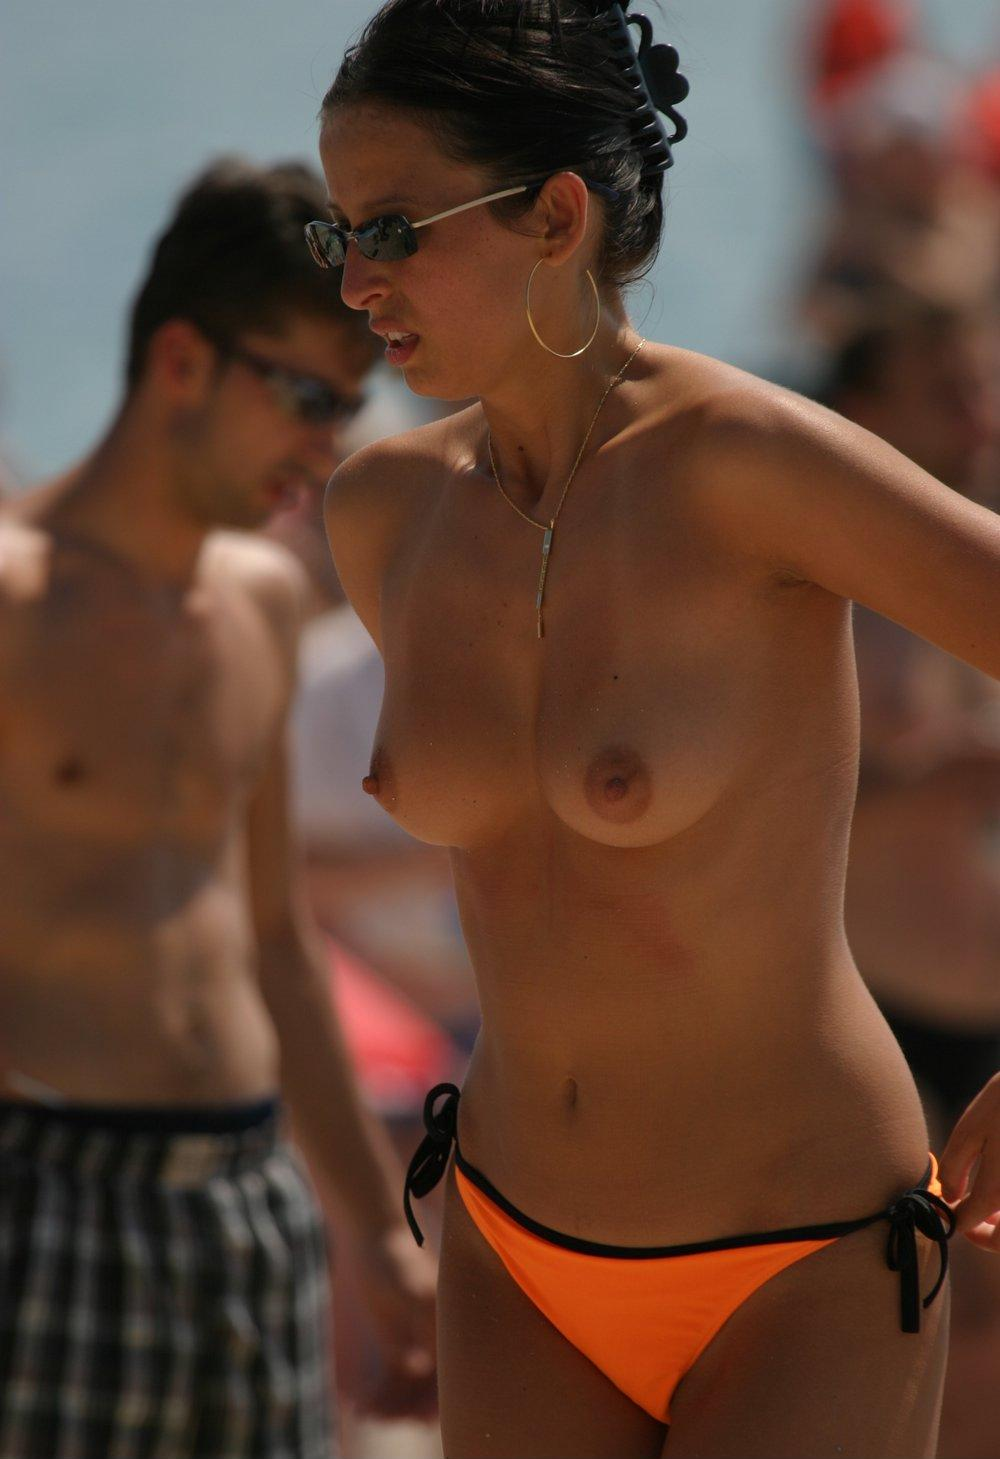 Orange panties and aroused nipples in our view